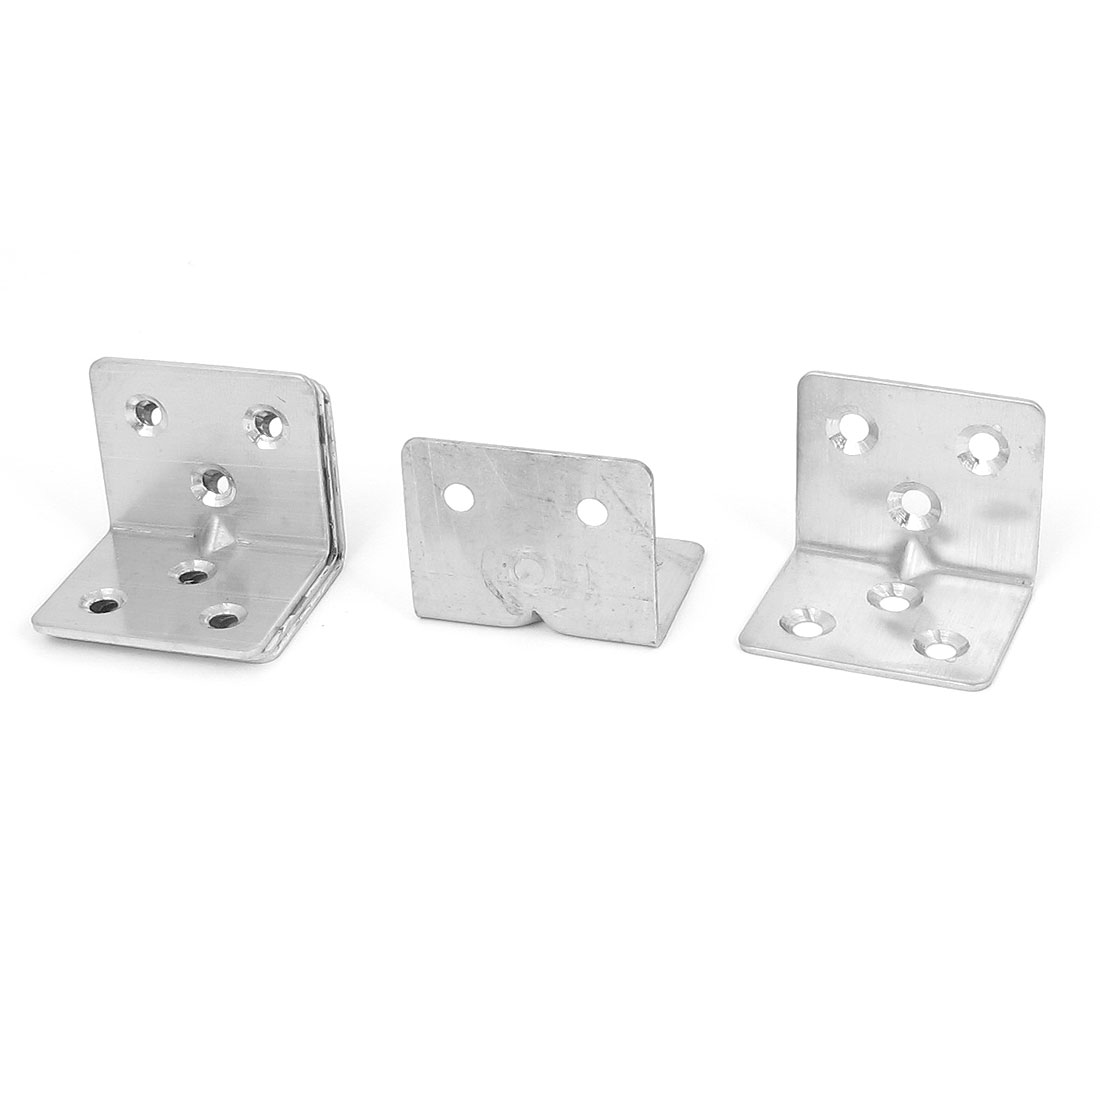 30mmx30mmx38mm L Shape Corner Brace Repair Right Angle Bracket Shelf Support 5pcs